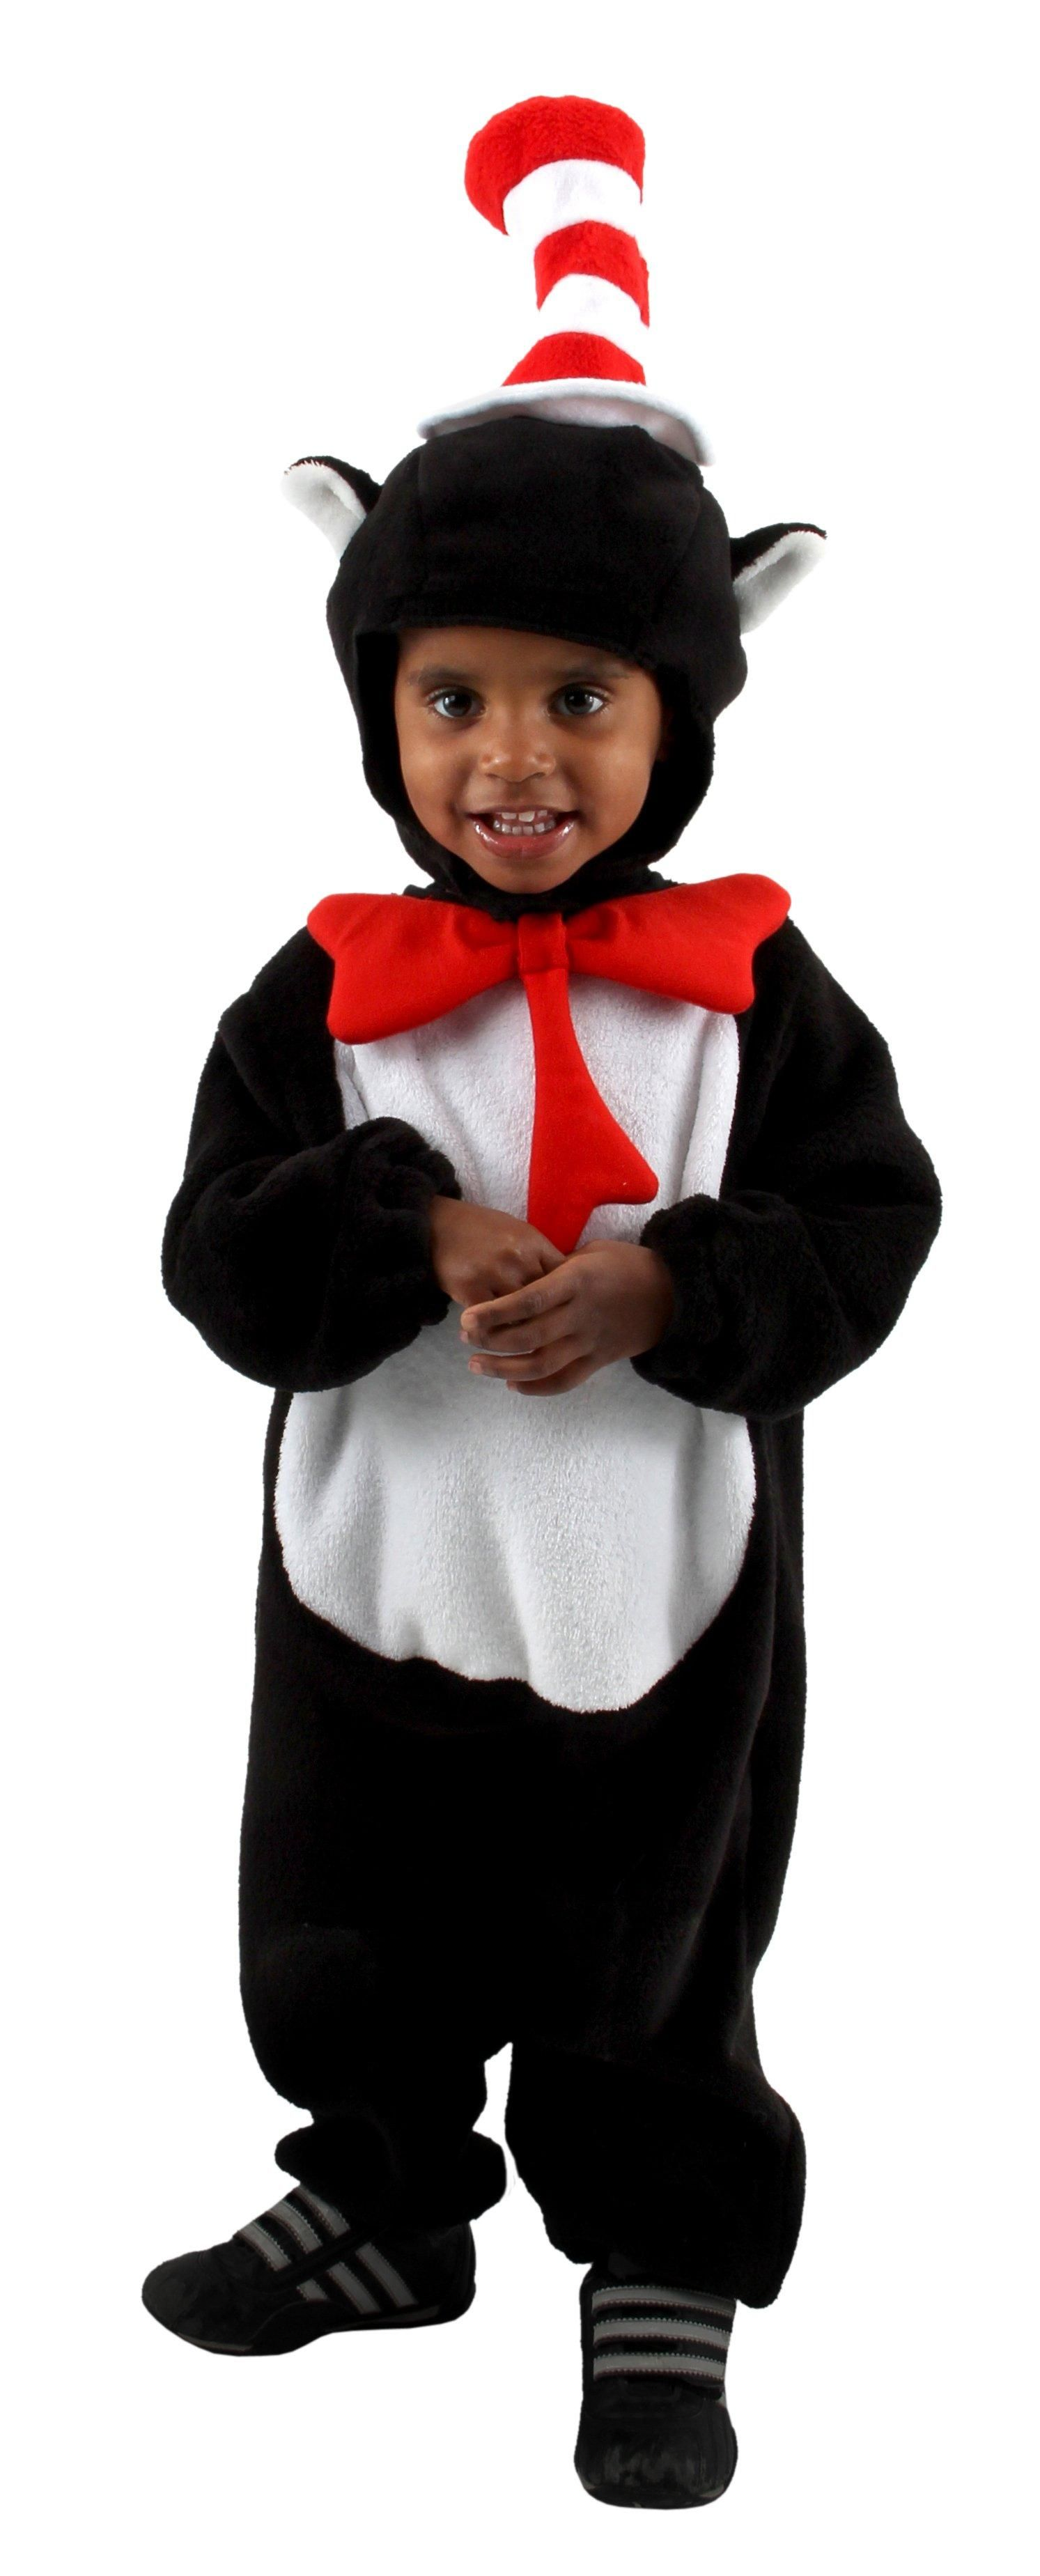 Dr. Seuss The Cat in the Hat - The Cat in the Hat Infant Costume  sc 1 st  Pinterest & Dr. Seuss The Cat in the Hat - The Cat in the Hat Infant Costume ...